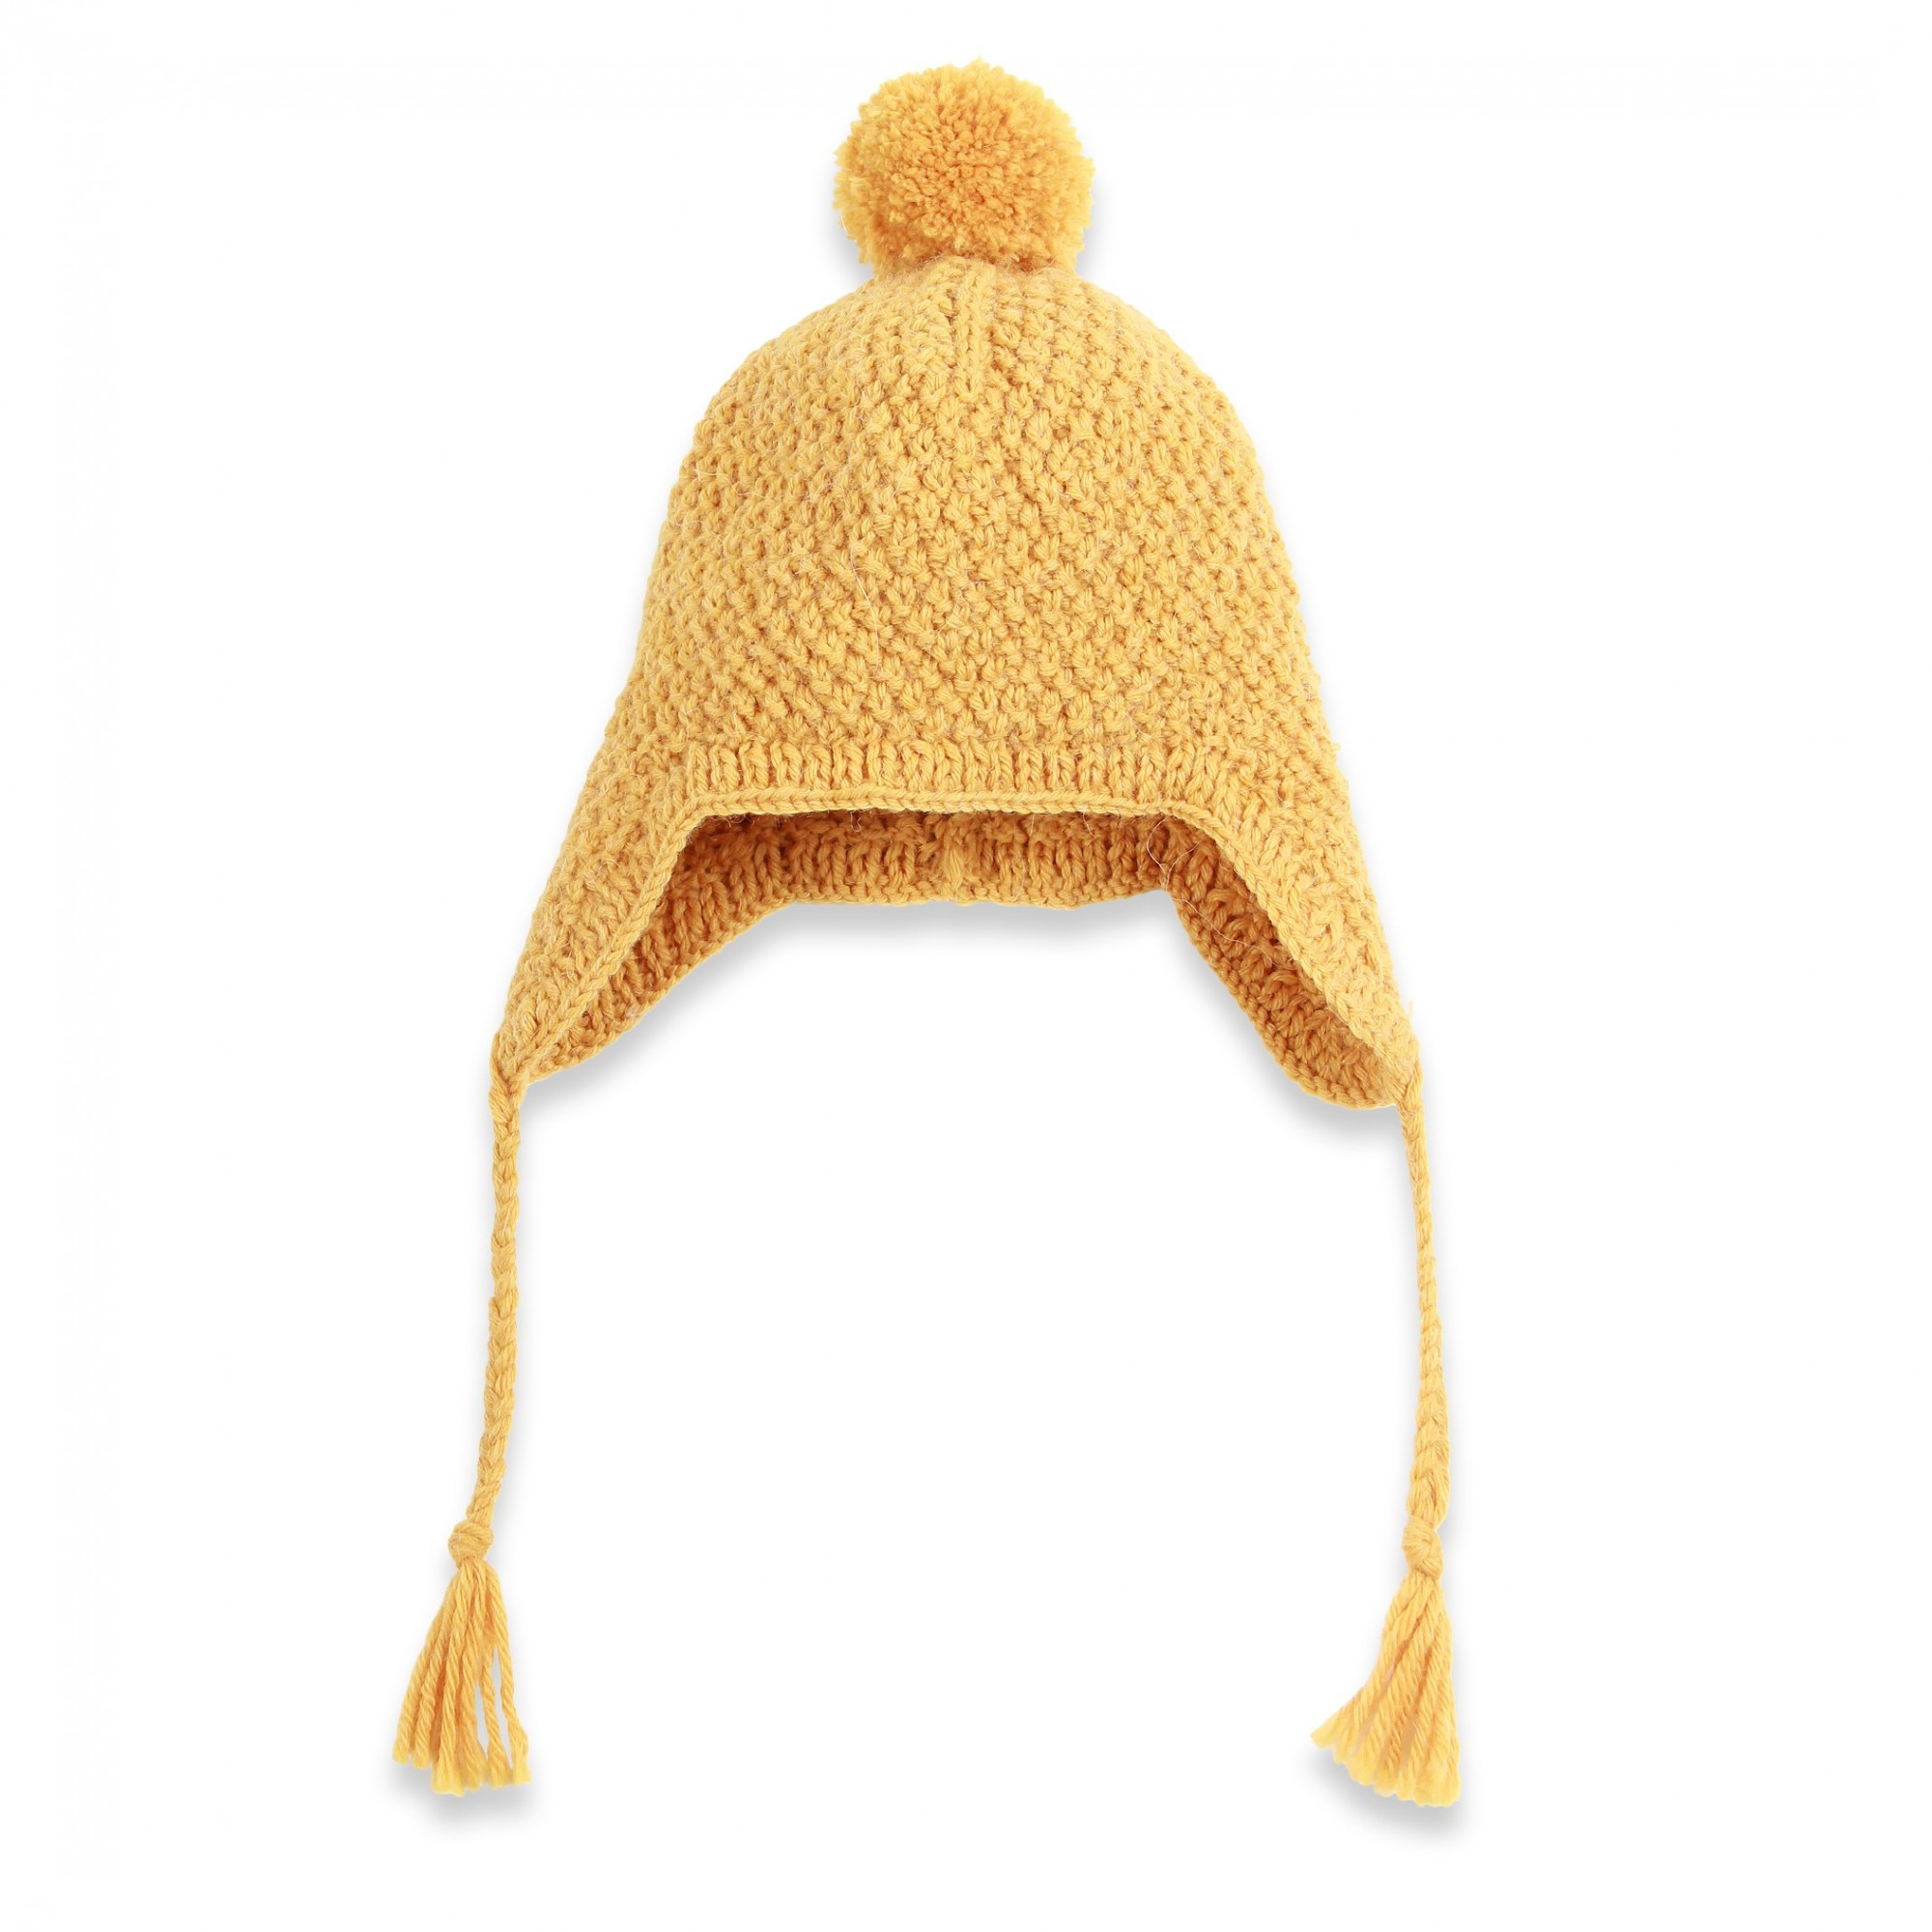 37c308bbdba Peruvian cap knitted by knitting grannies with yellow wool   alpaca.